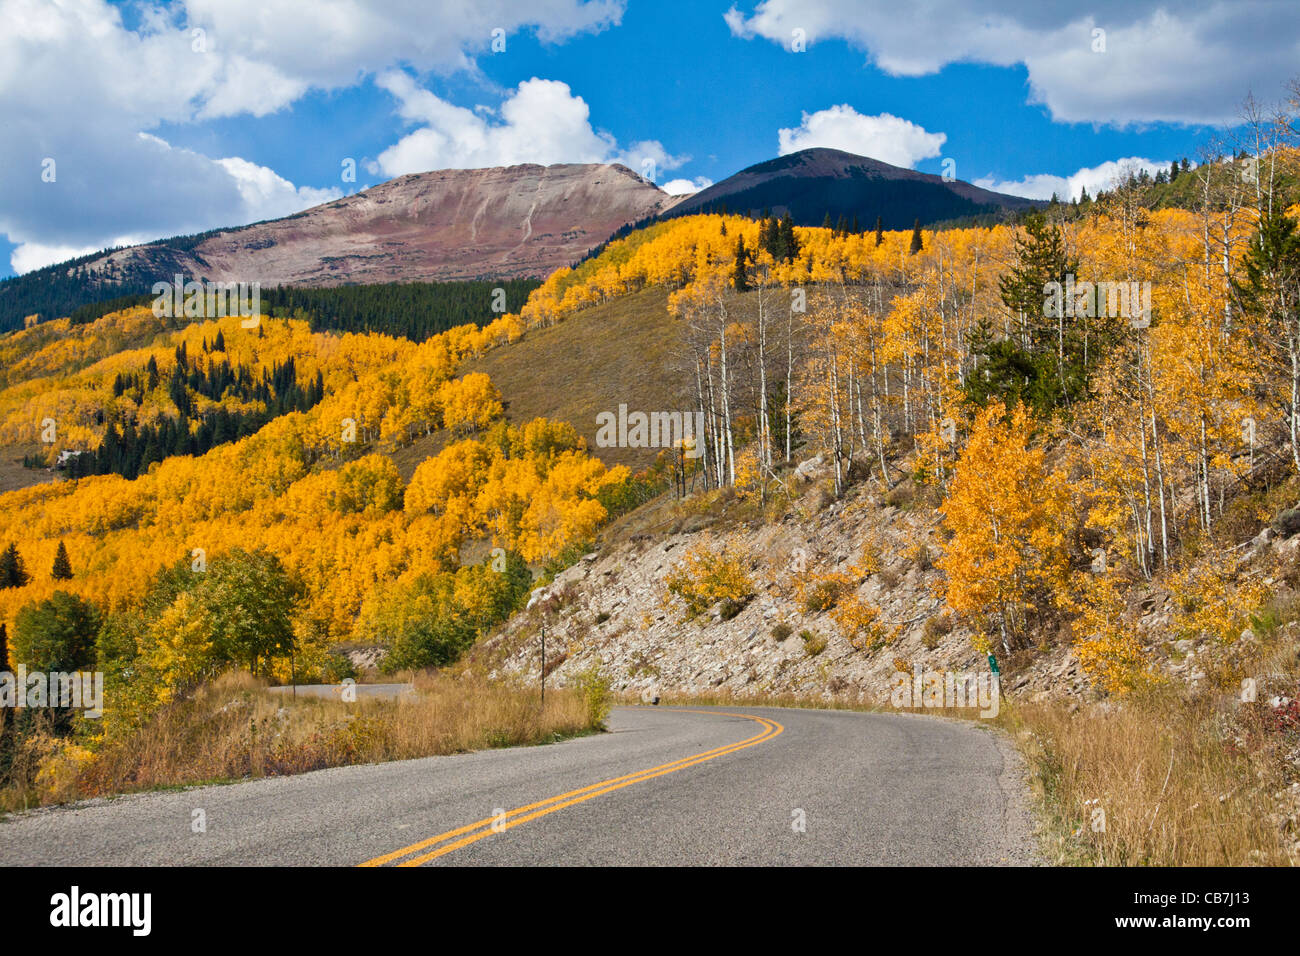 Autumn Color with Aspens turning - on Kebler Pass road - Stock Image